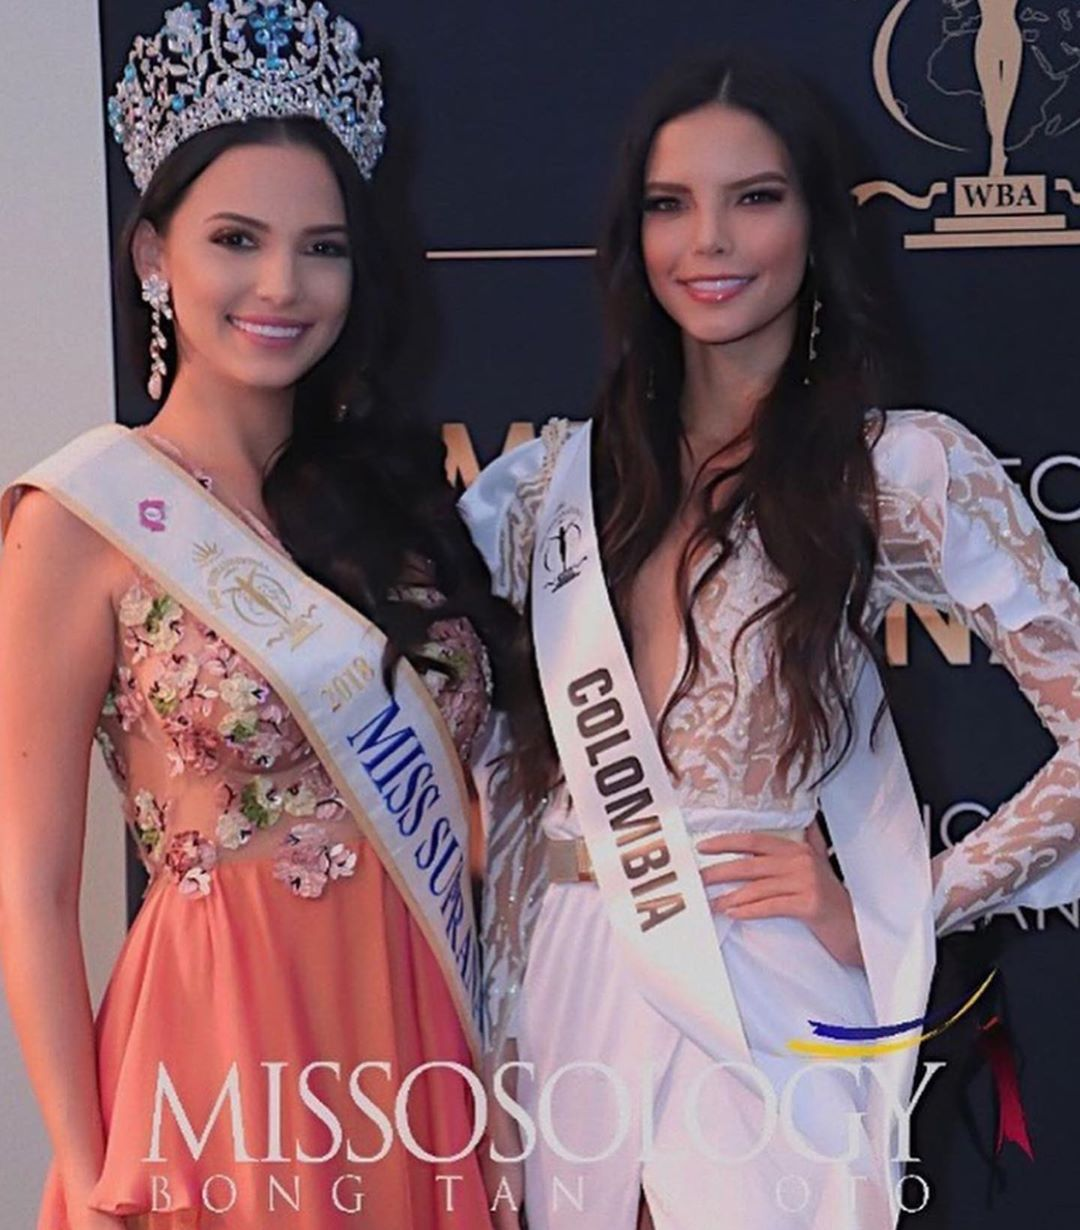 yaiselle tous, miss supranational colombia 2019. - Página 5 72162010